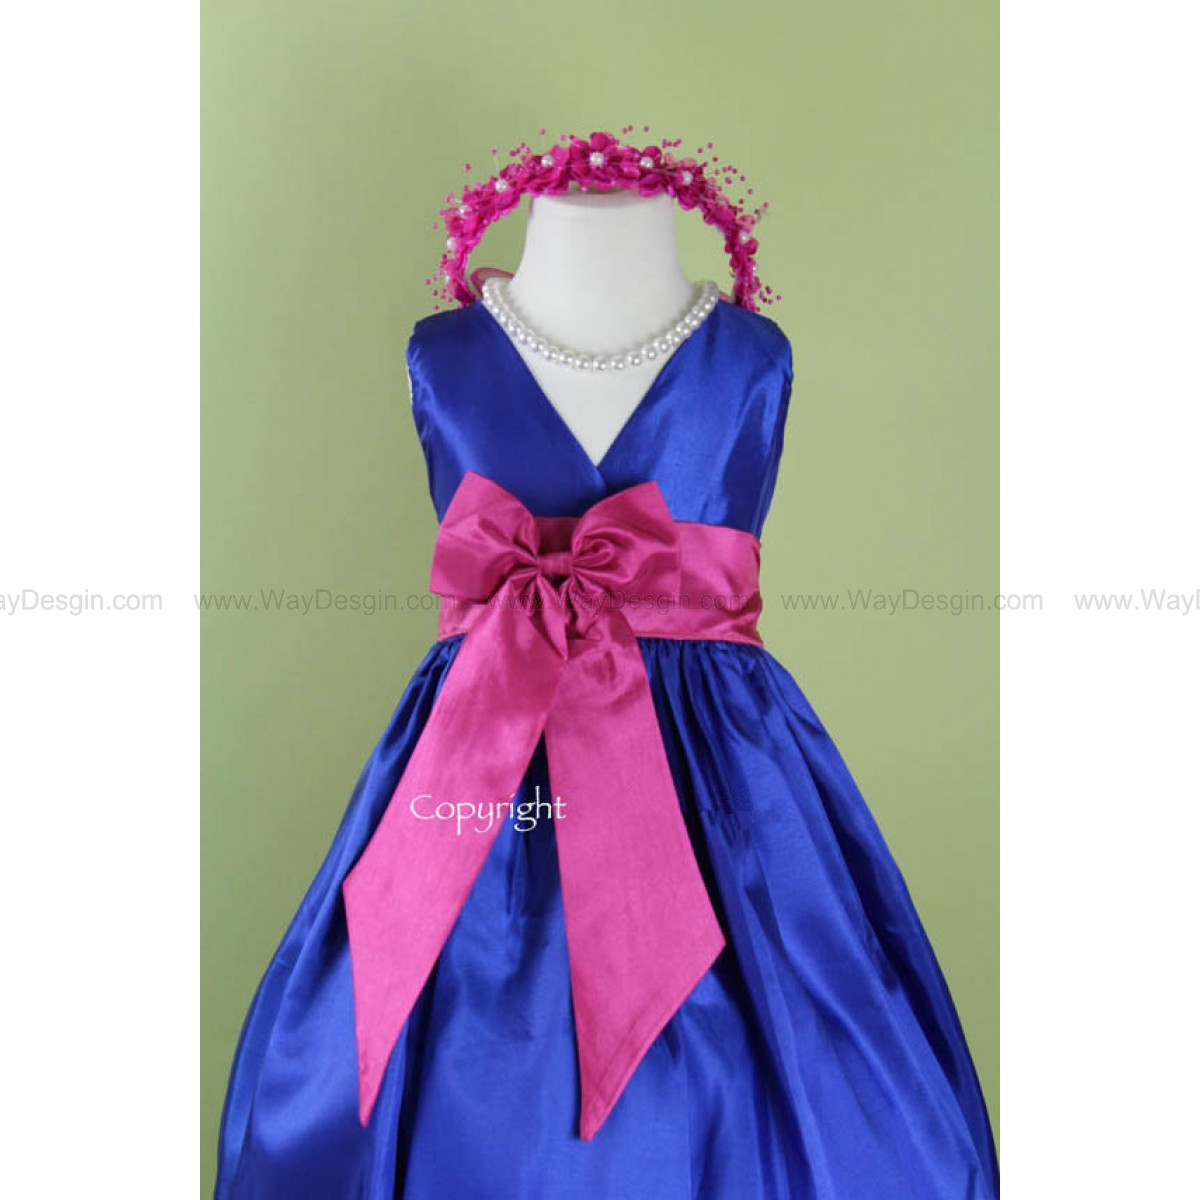 Flower Girl Dress - Blue ROYAL V Dress with FUCHSIA Bow Sash - Easter, Junior Bridesmaid, Wedding - From Toddler to Teen